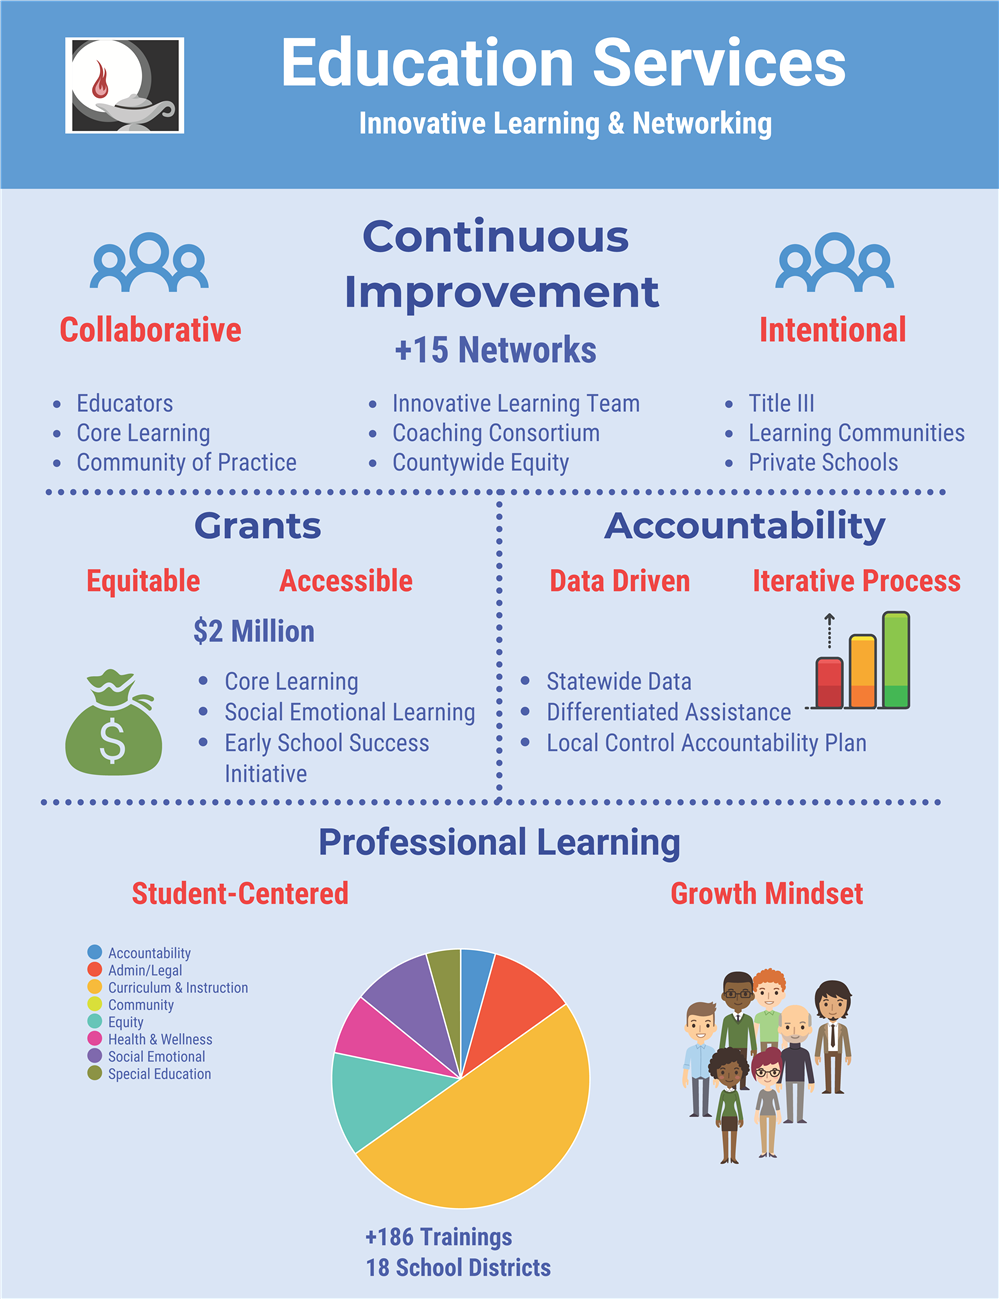 Education Services – Innovative Learning & Networking Infographic